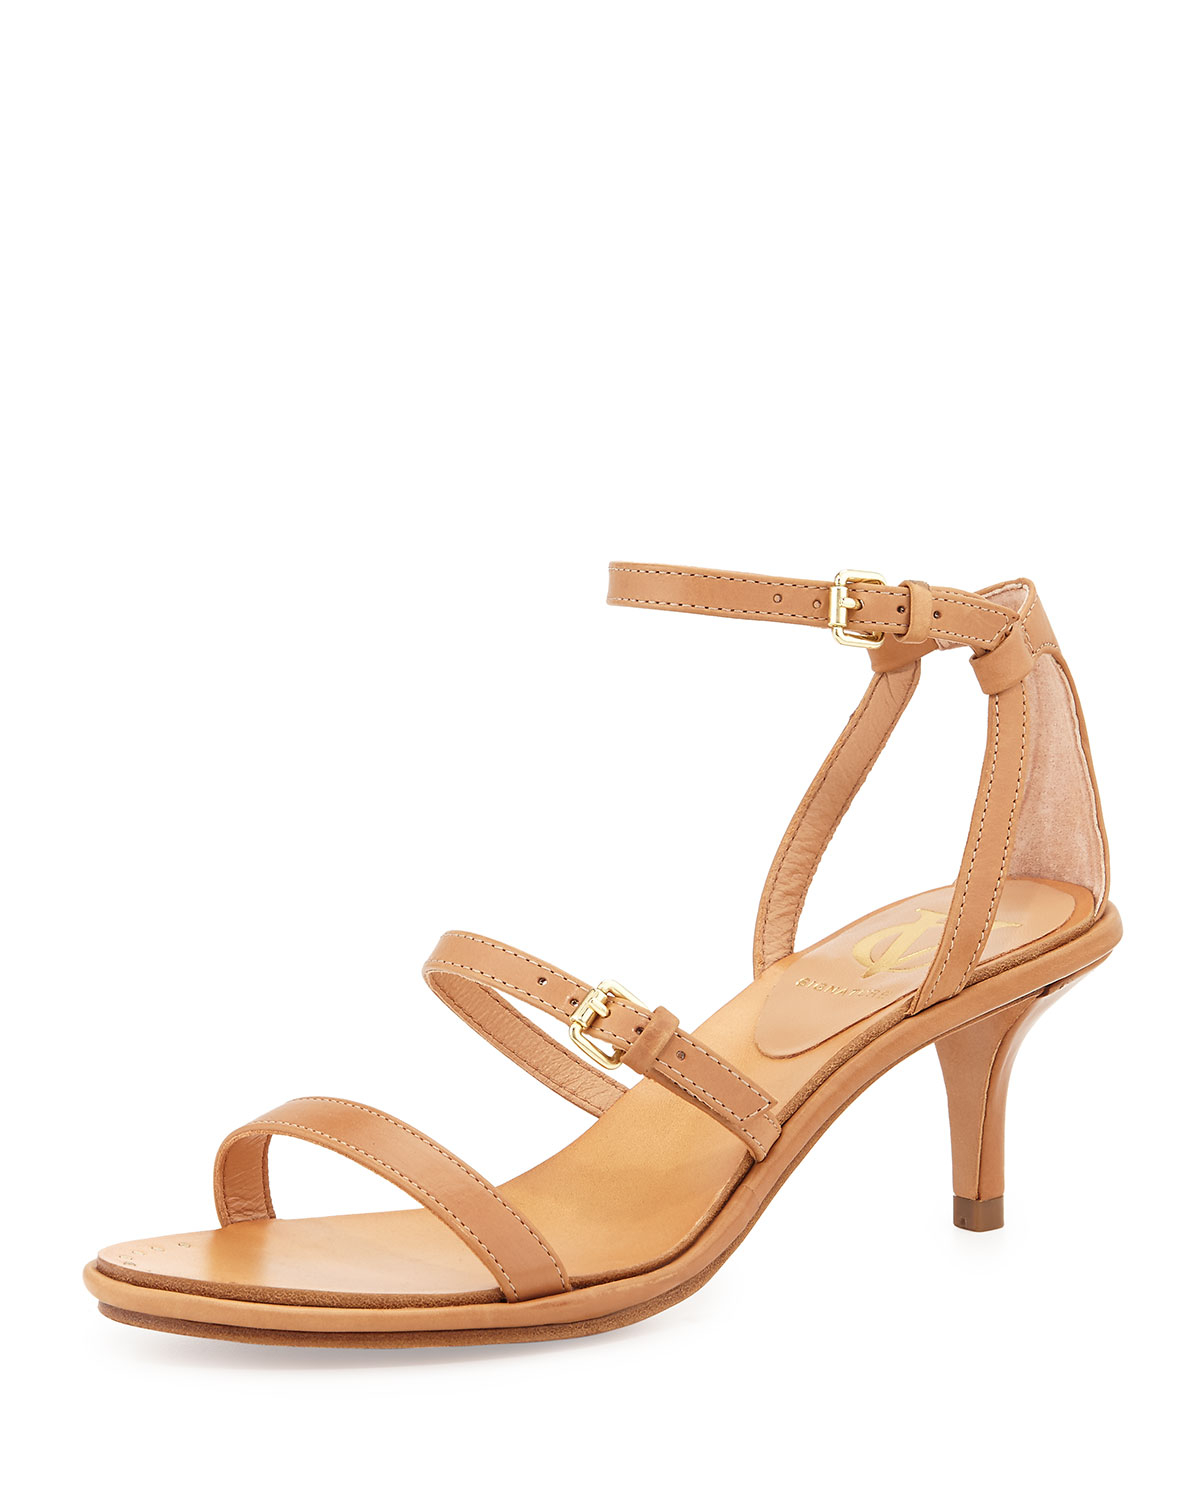 Vince camuto signature Hilarie Kitten-Heel Sandal Pump in Natural ...